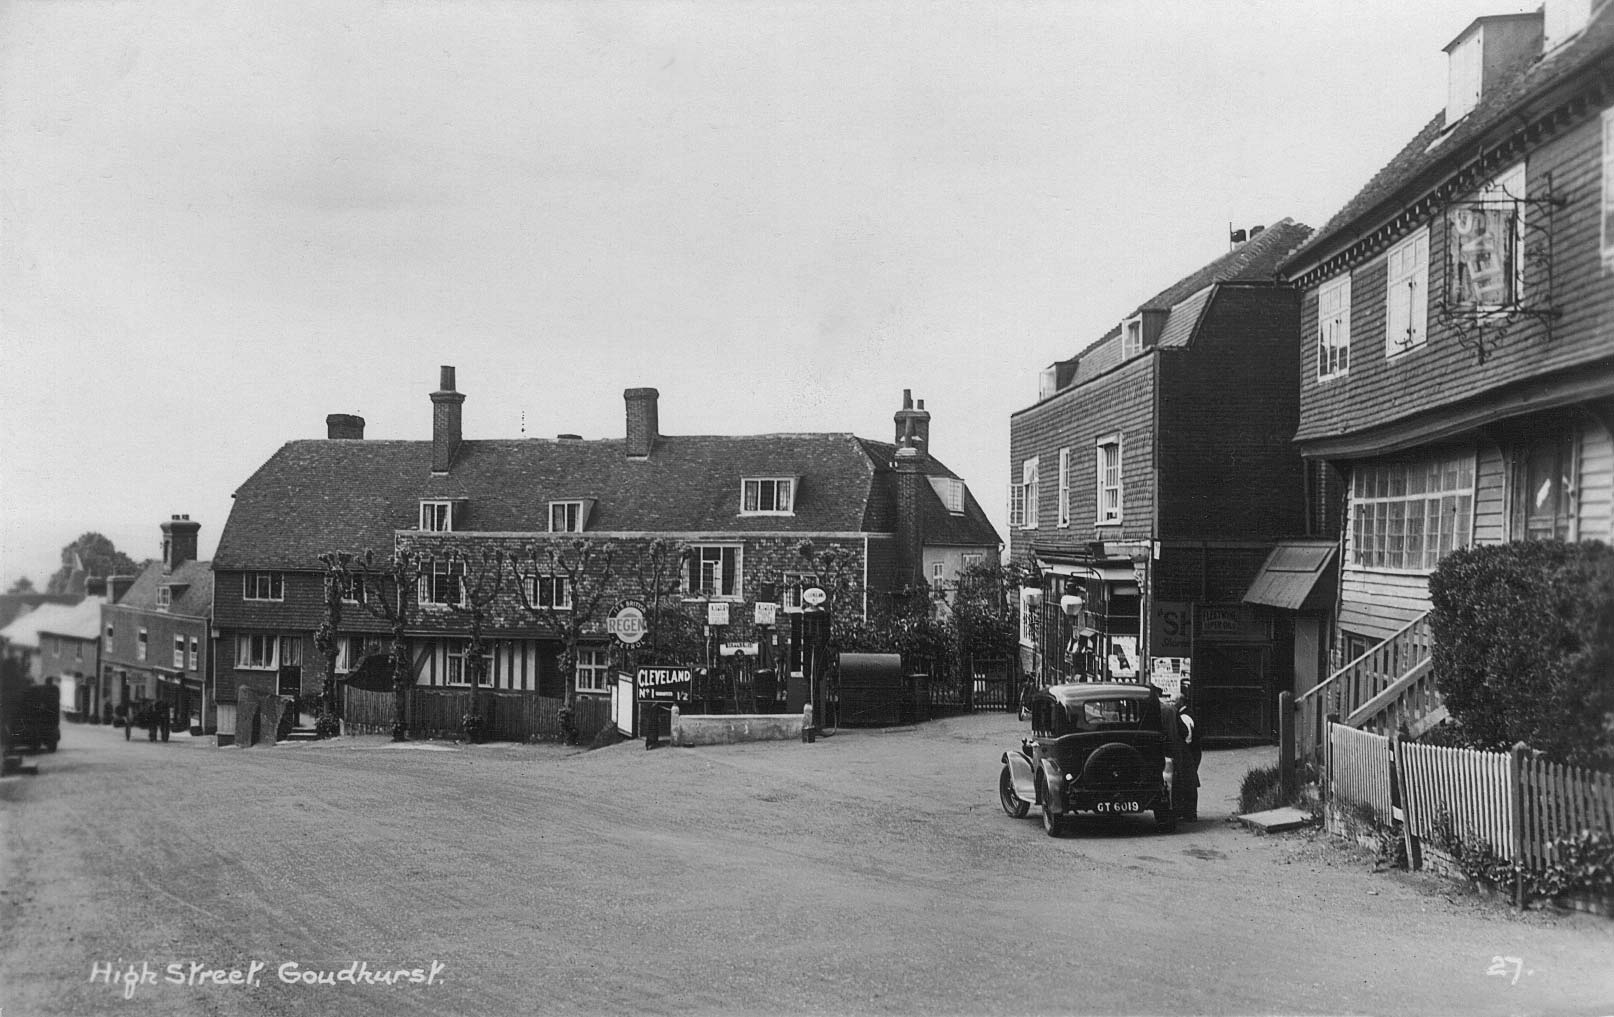 The old High Street, Goudhurst